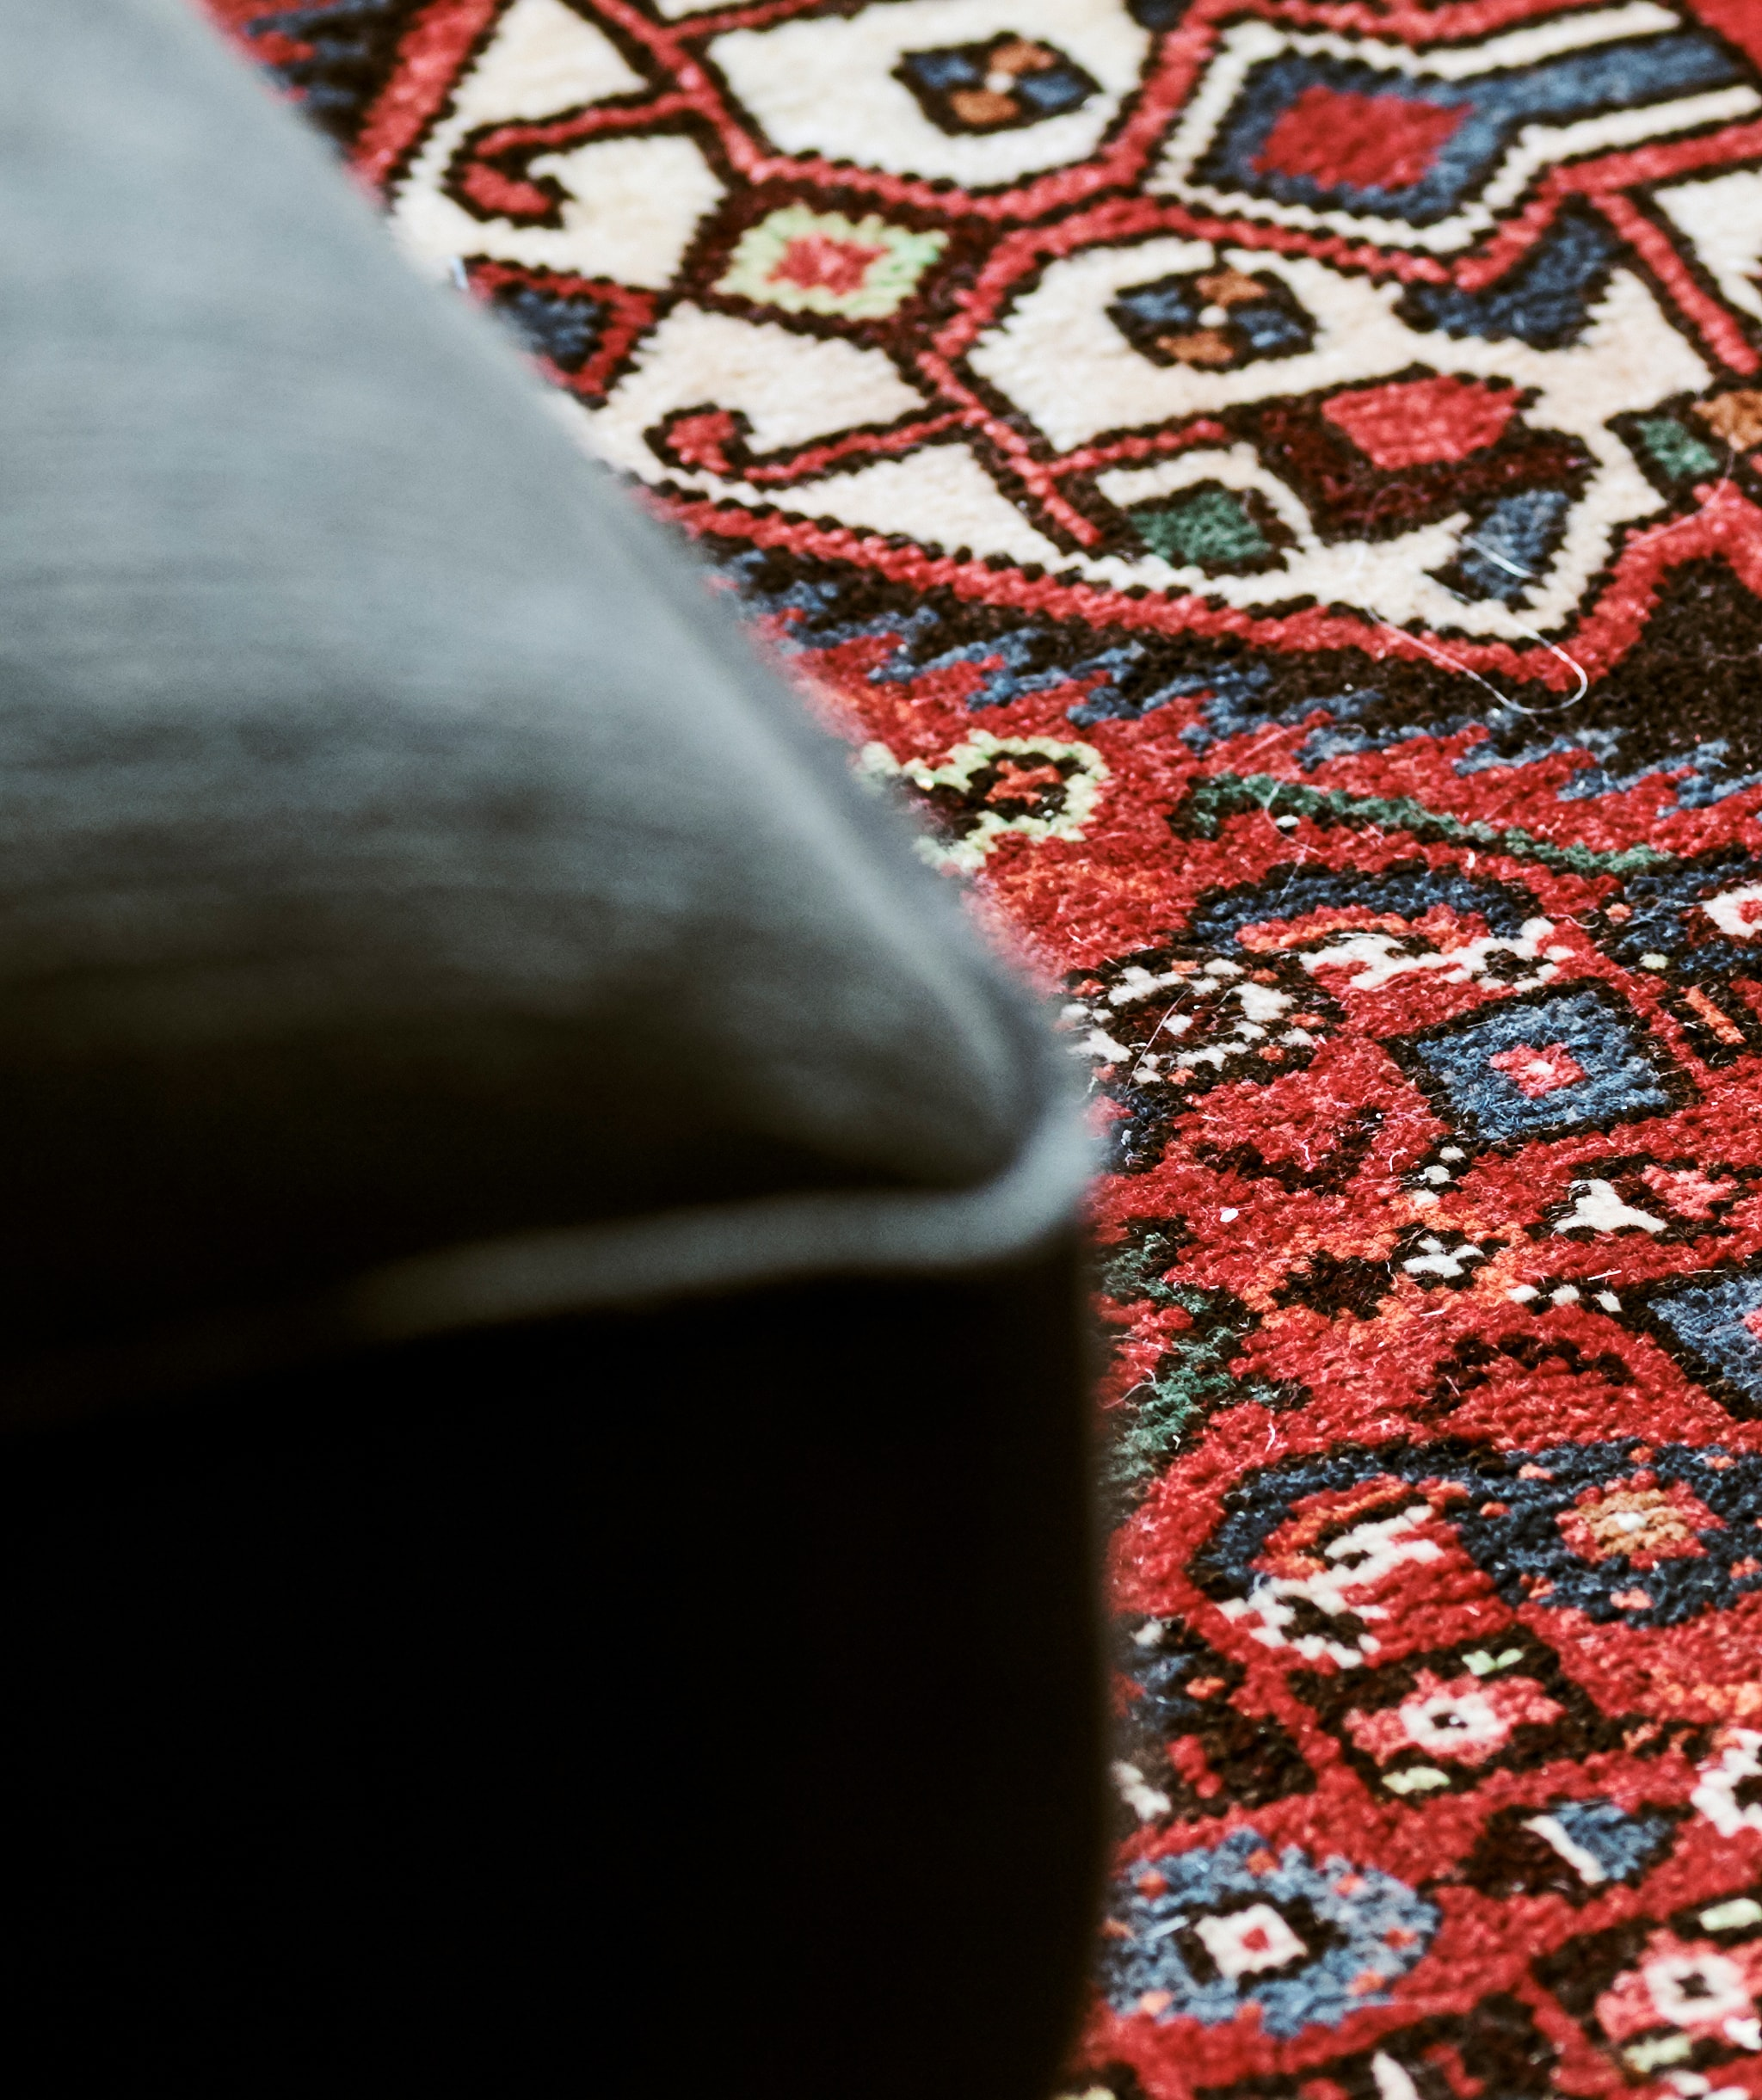 Detail of a Persian rug woven into a pattern with blue and green shapes on a red background